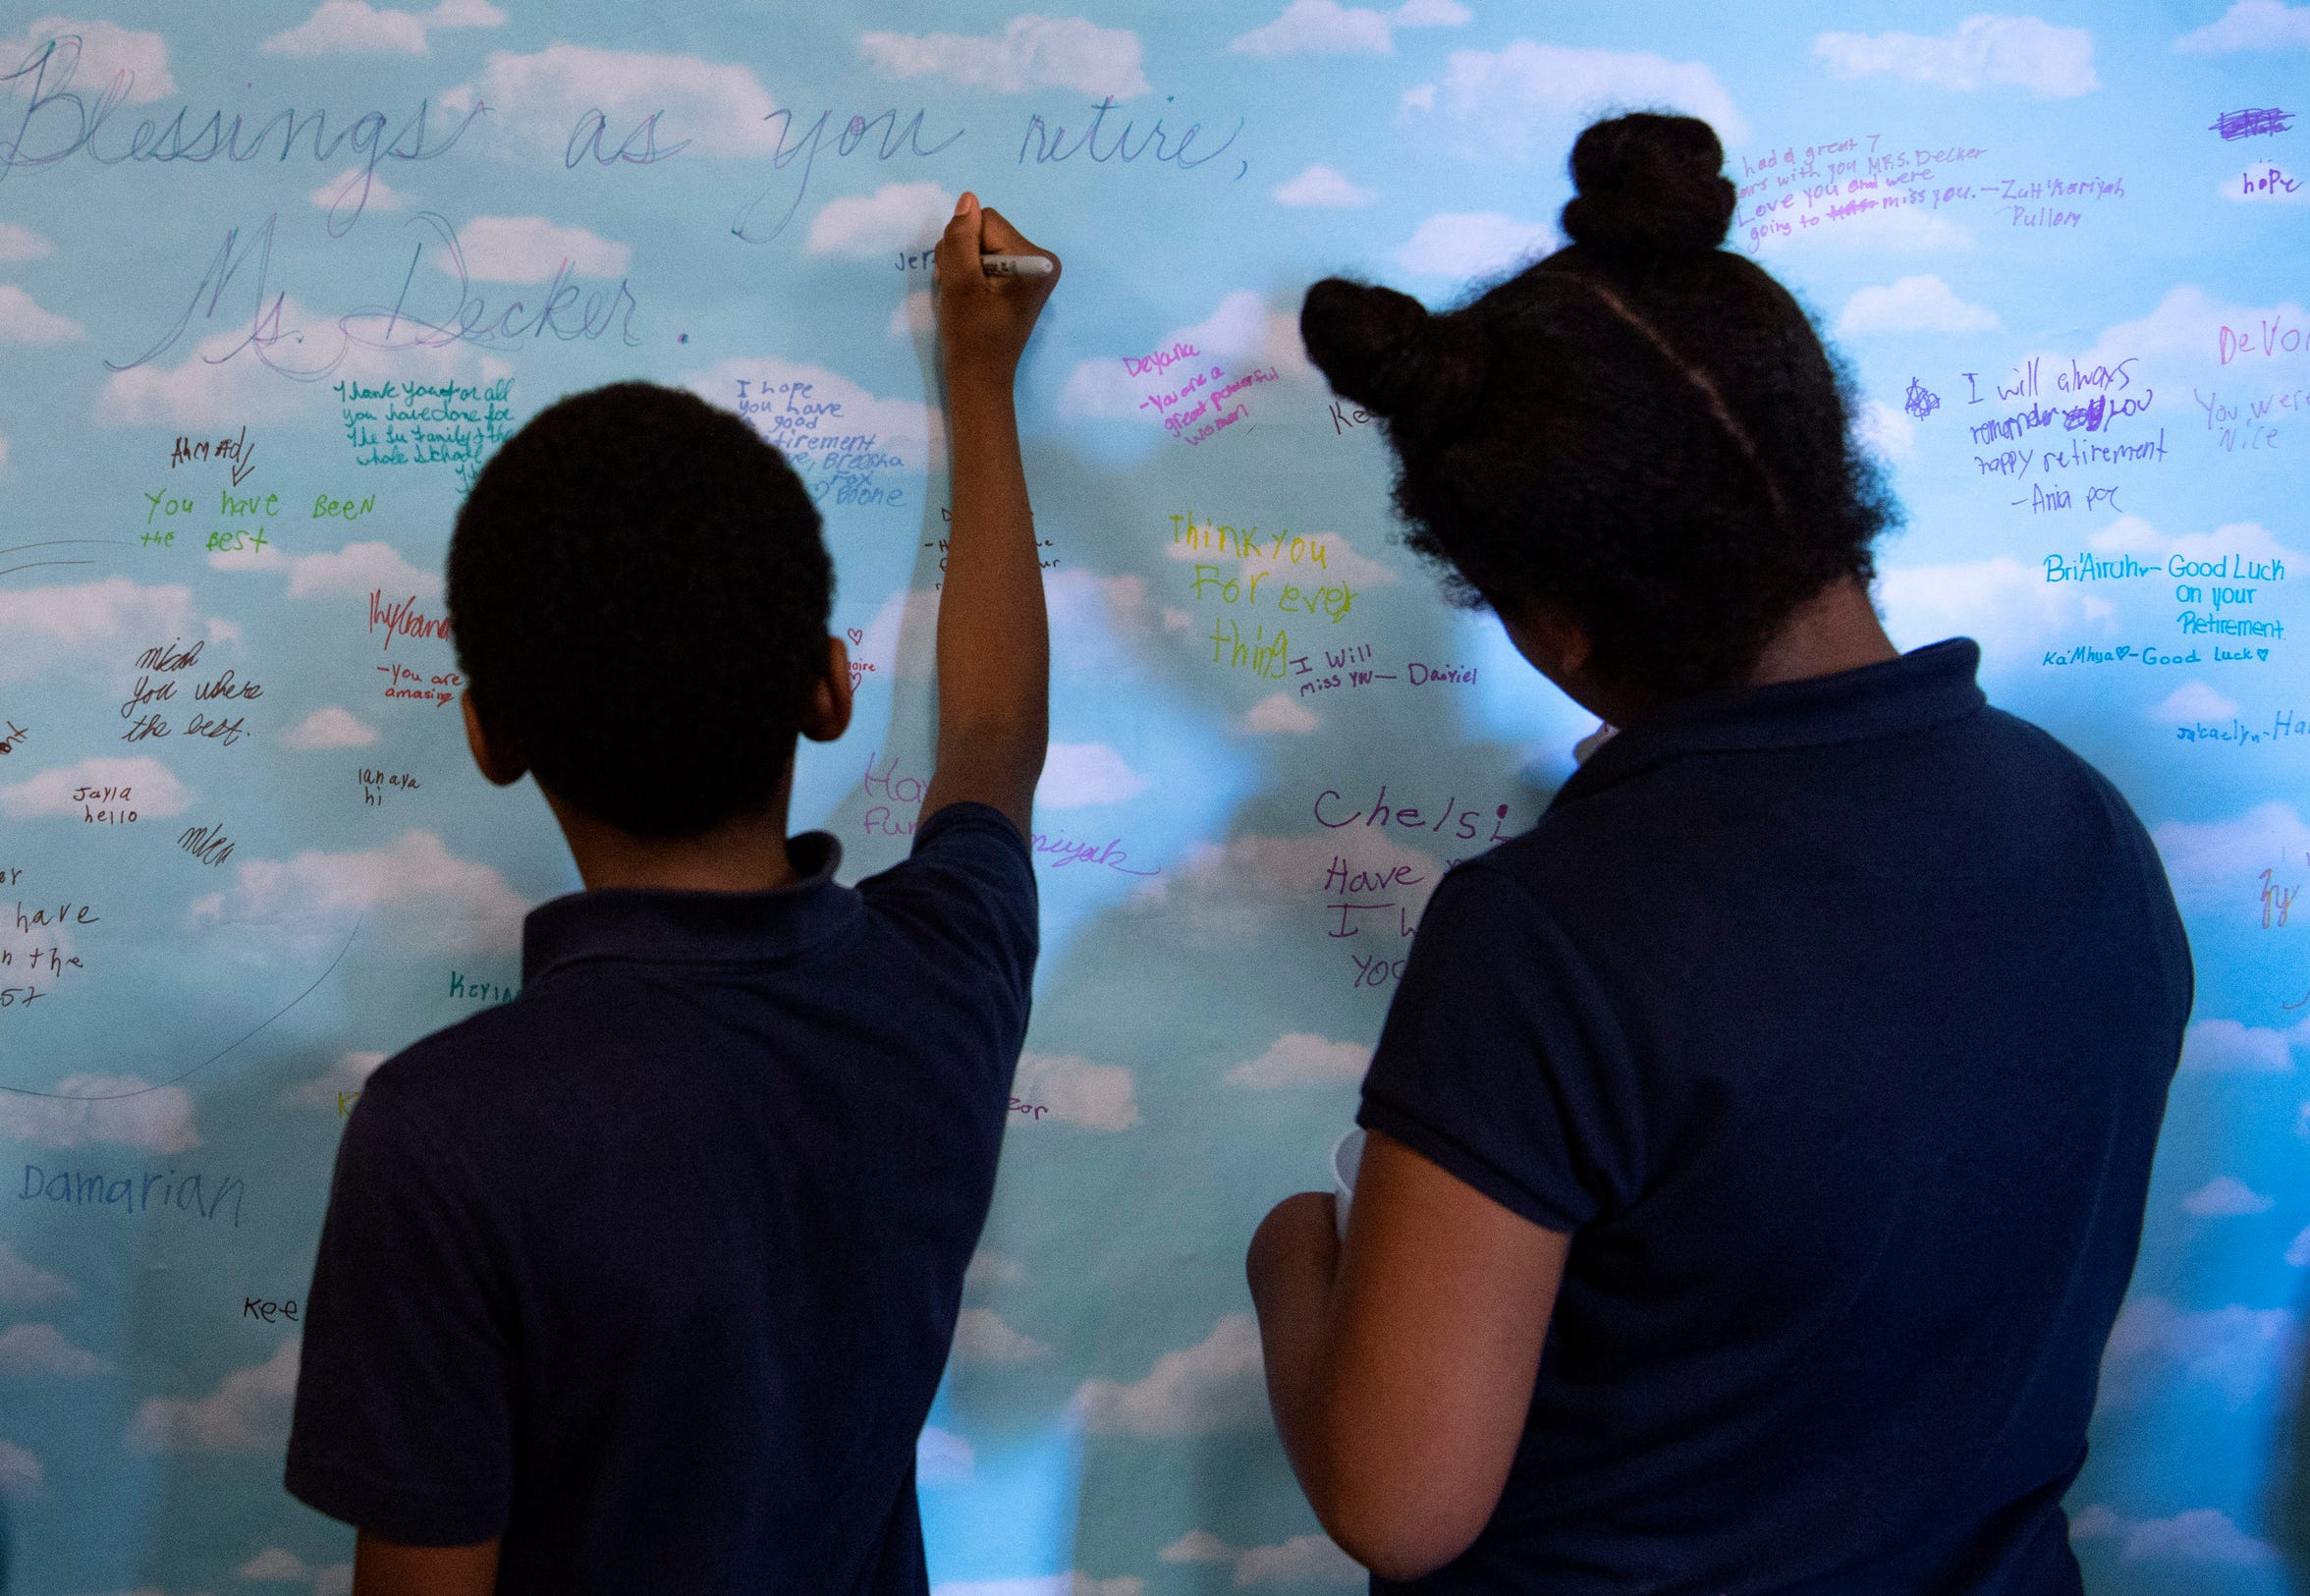 """Joshua Academy students sign a cloud-covered wall-hanging that read, """"Blessings as you retire, Ms. Decker"""" at her retirement party on the last day of school Thursday, May 24, 2019."""